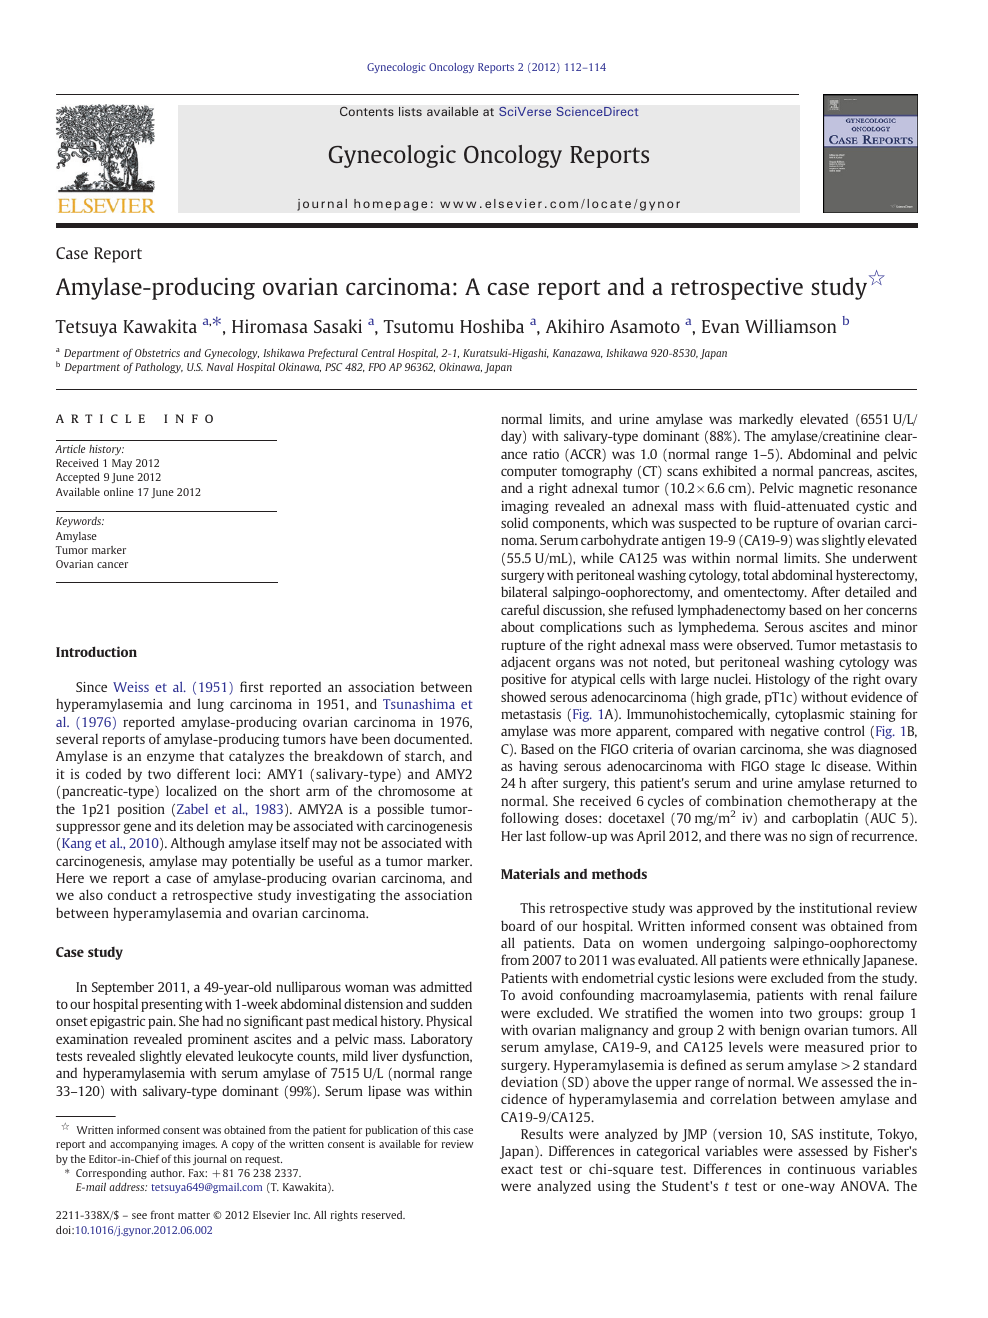 Amylase-producing ovarian carcinoma: A case report and a